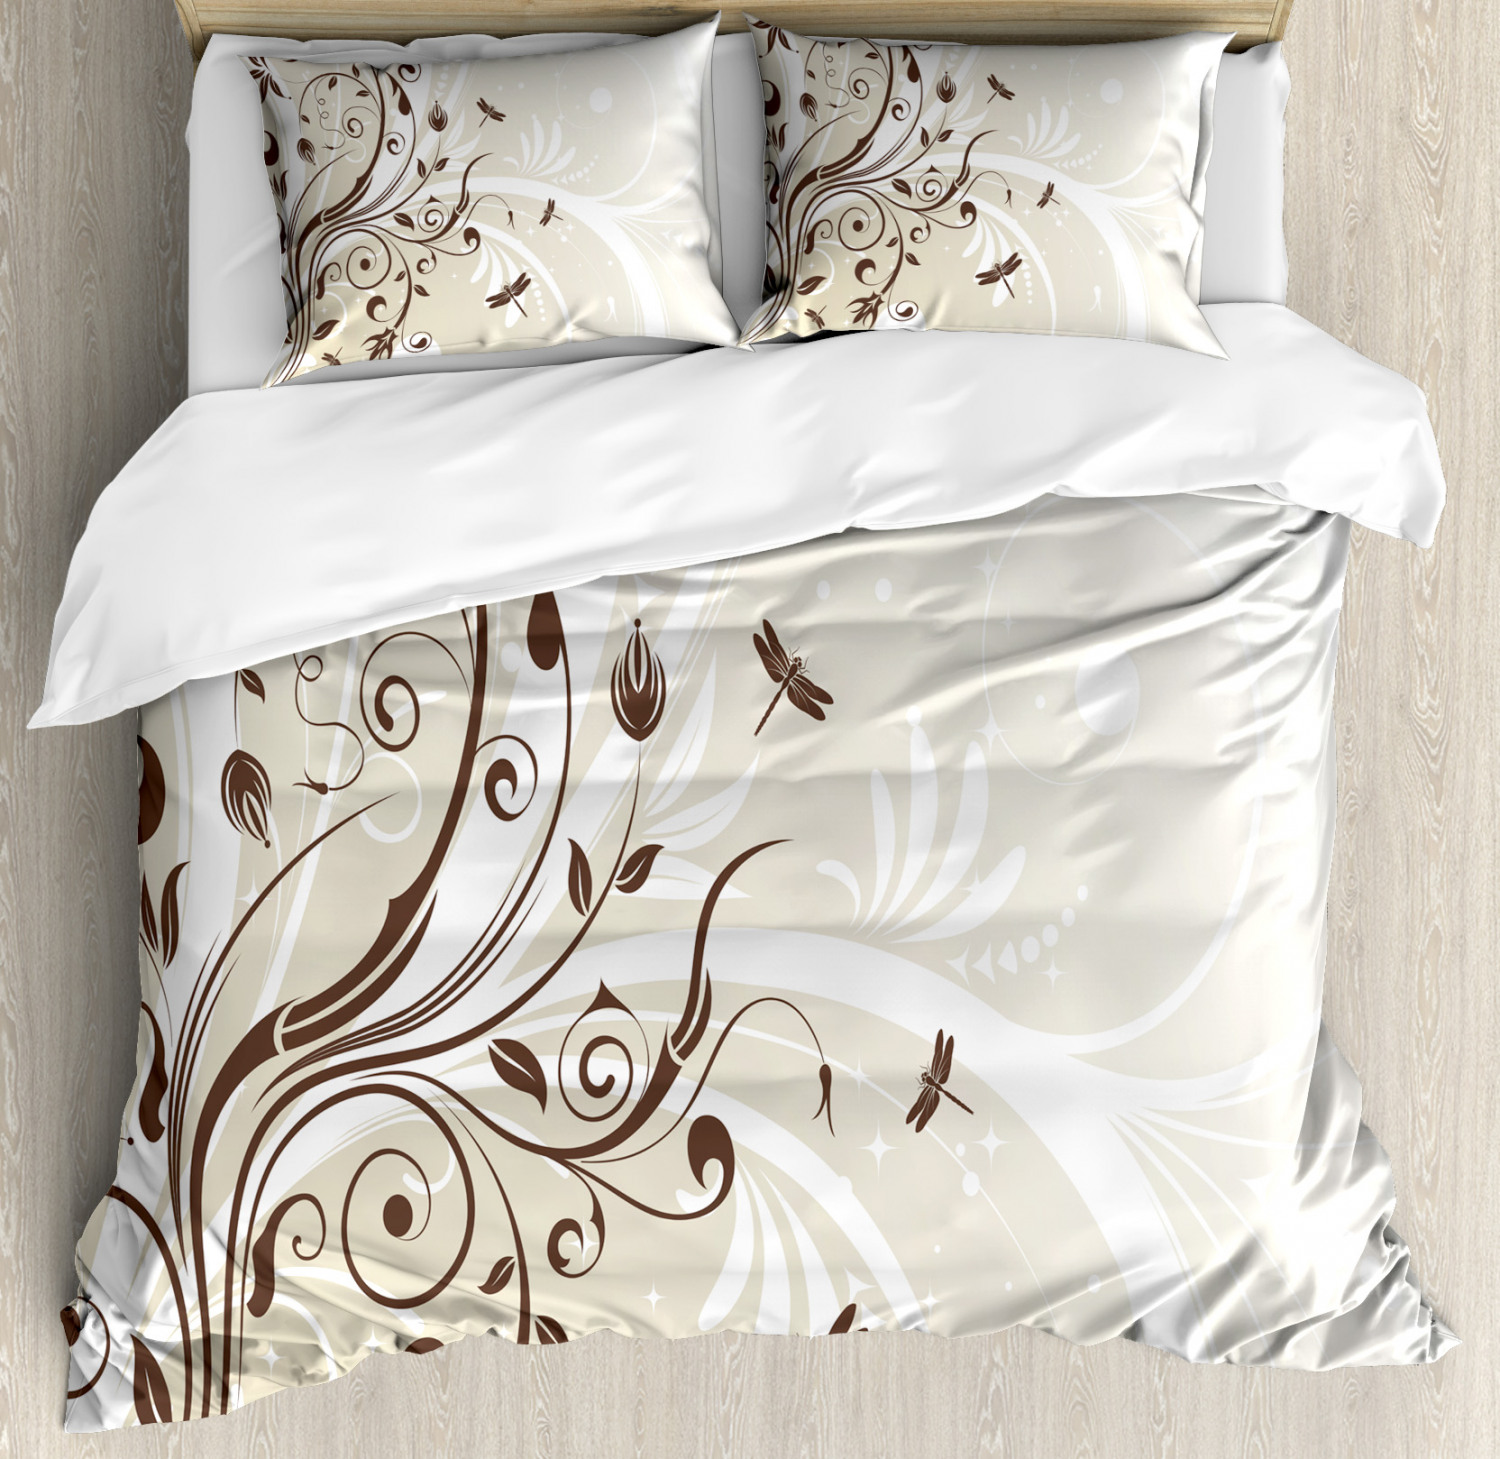 Dragonfly Duvet Cover Set with Pillow Shams Seasonal Flouris